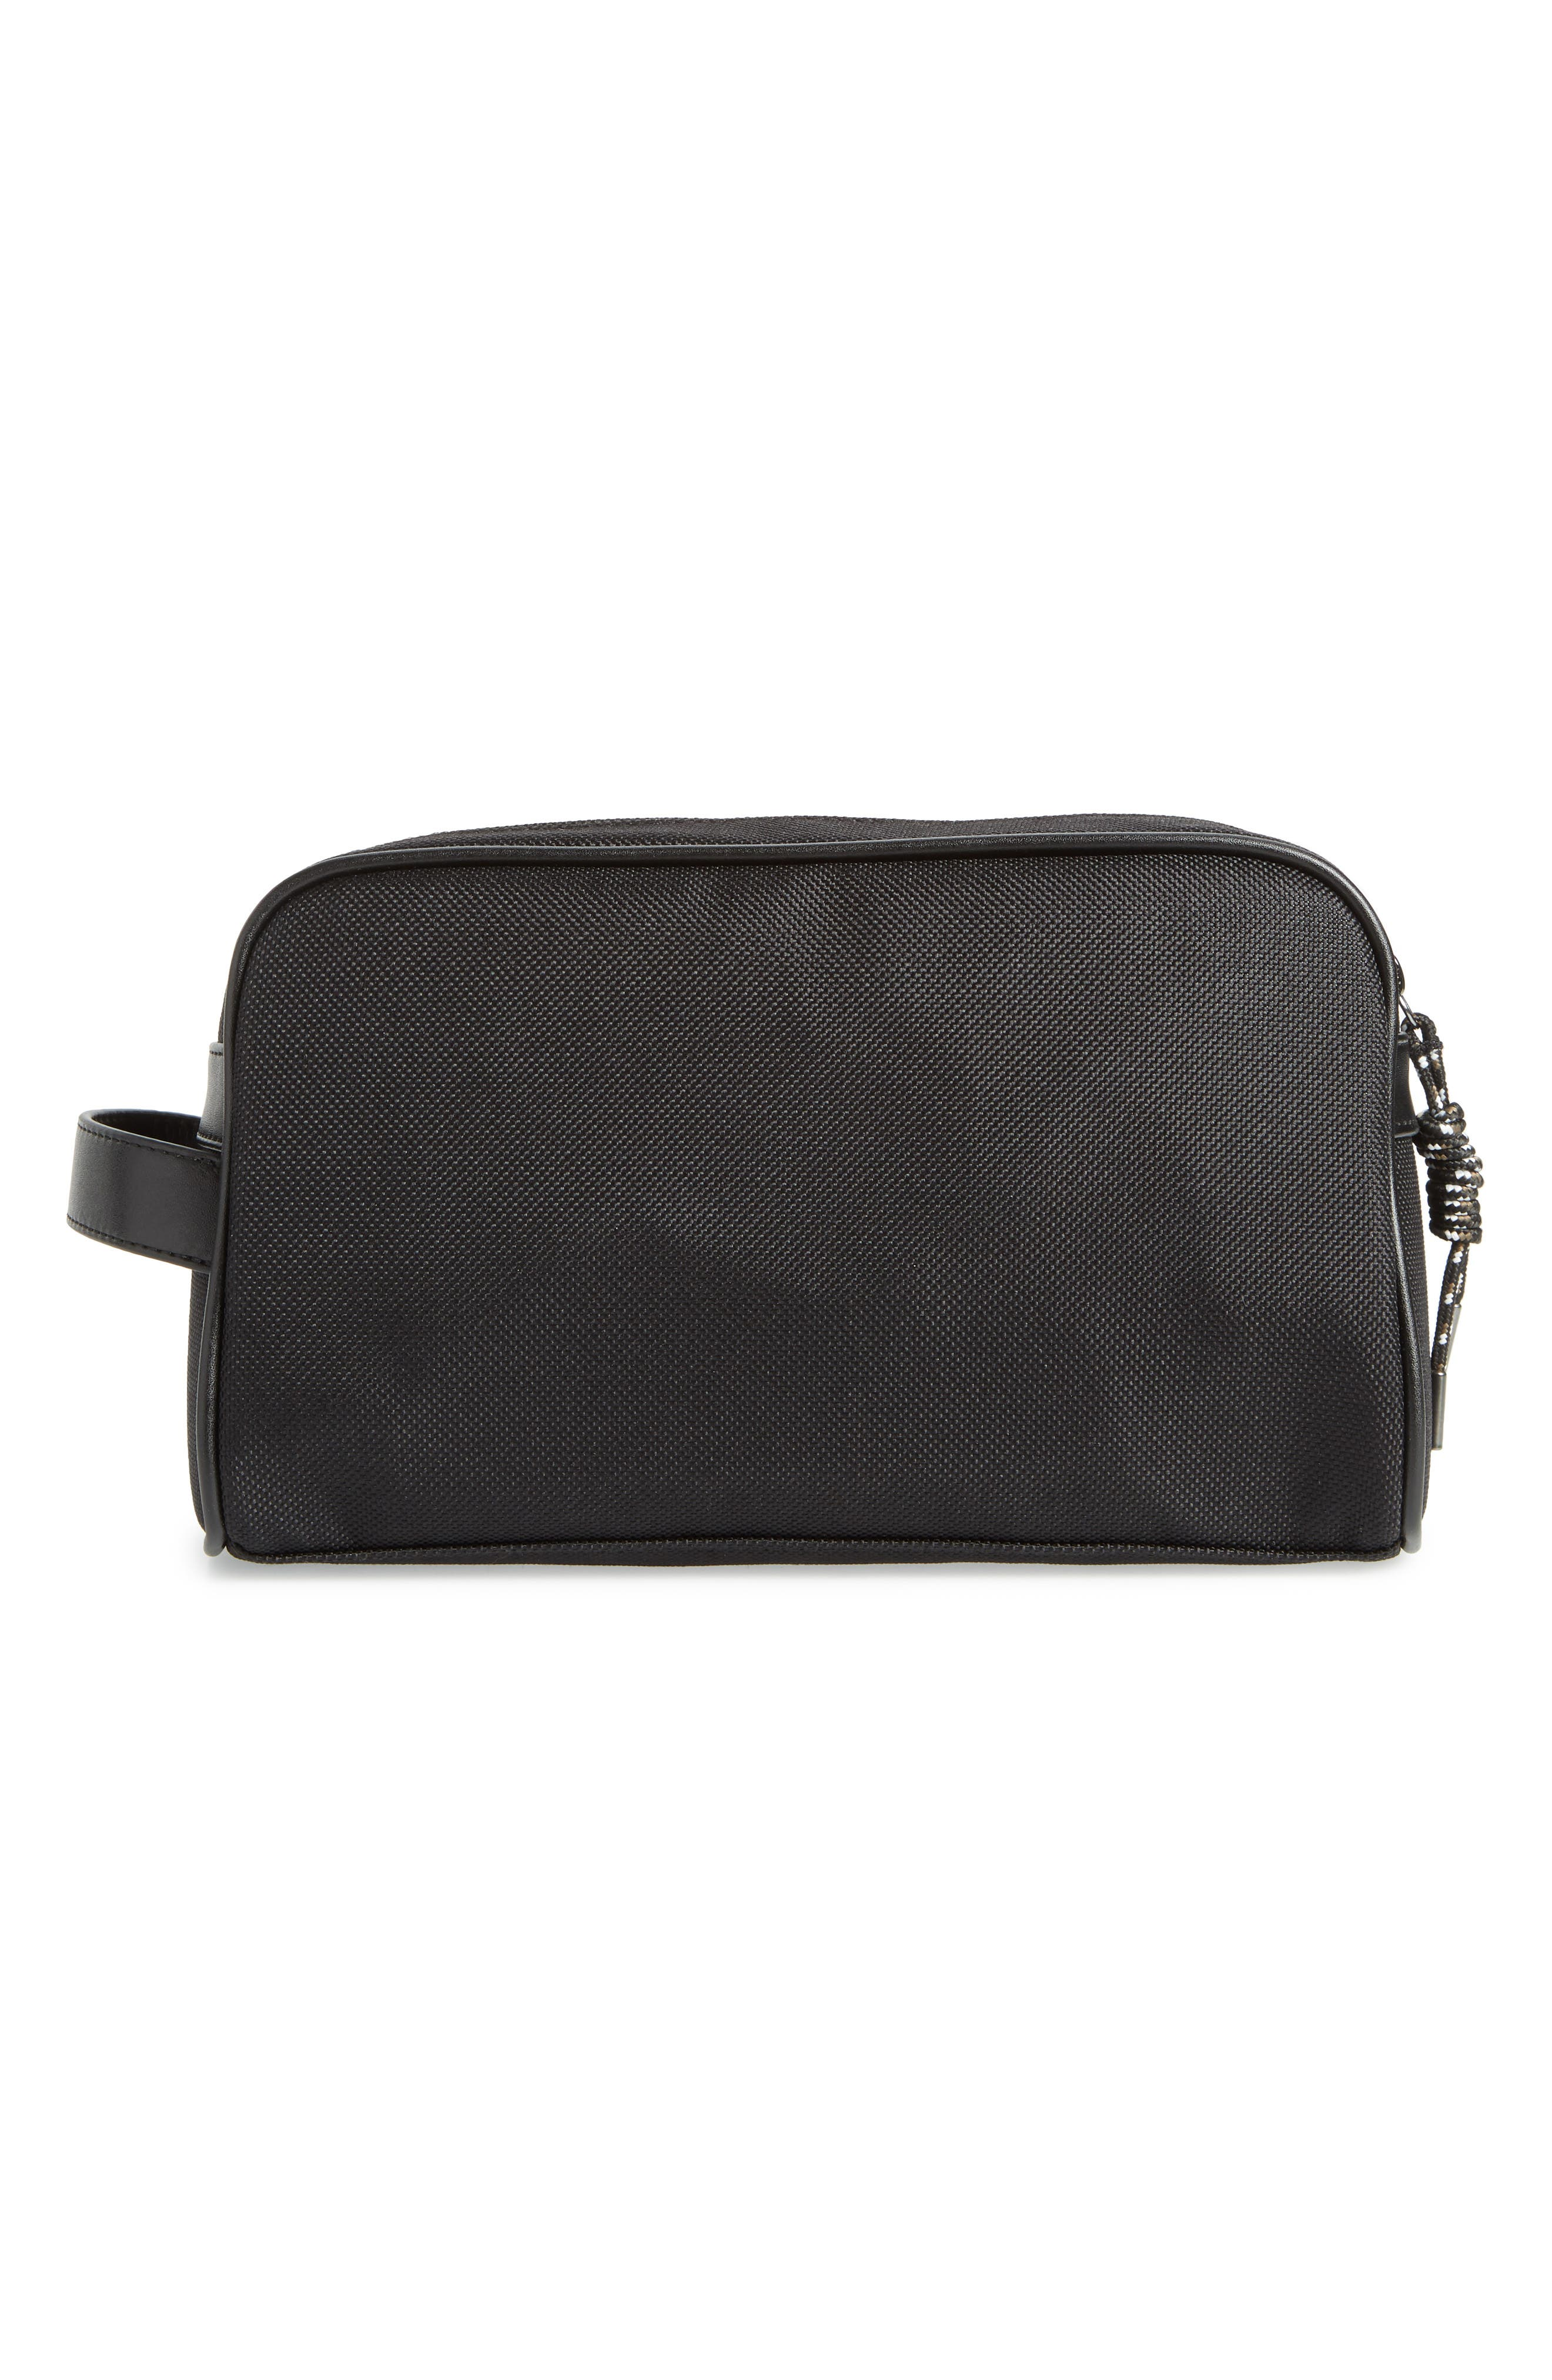 TED BAKER LONDON,                             Blends Dopp Kit,                             Alternate thumbnail 2, color,                             BLACK